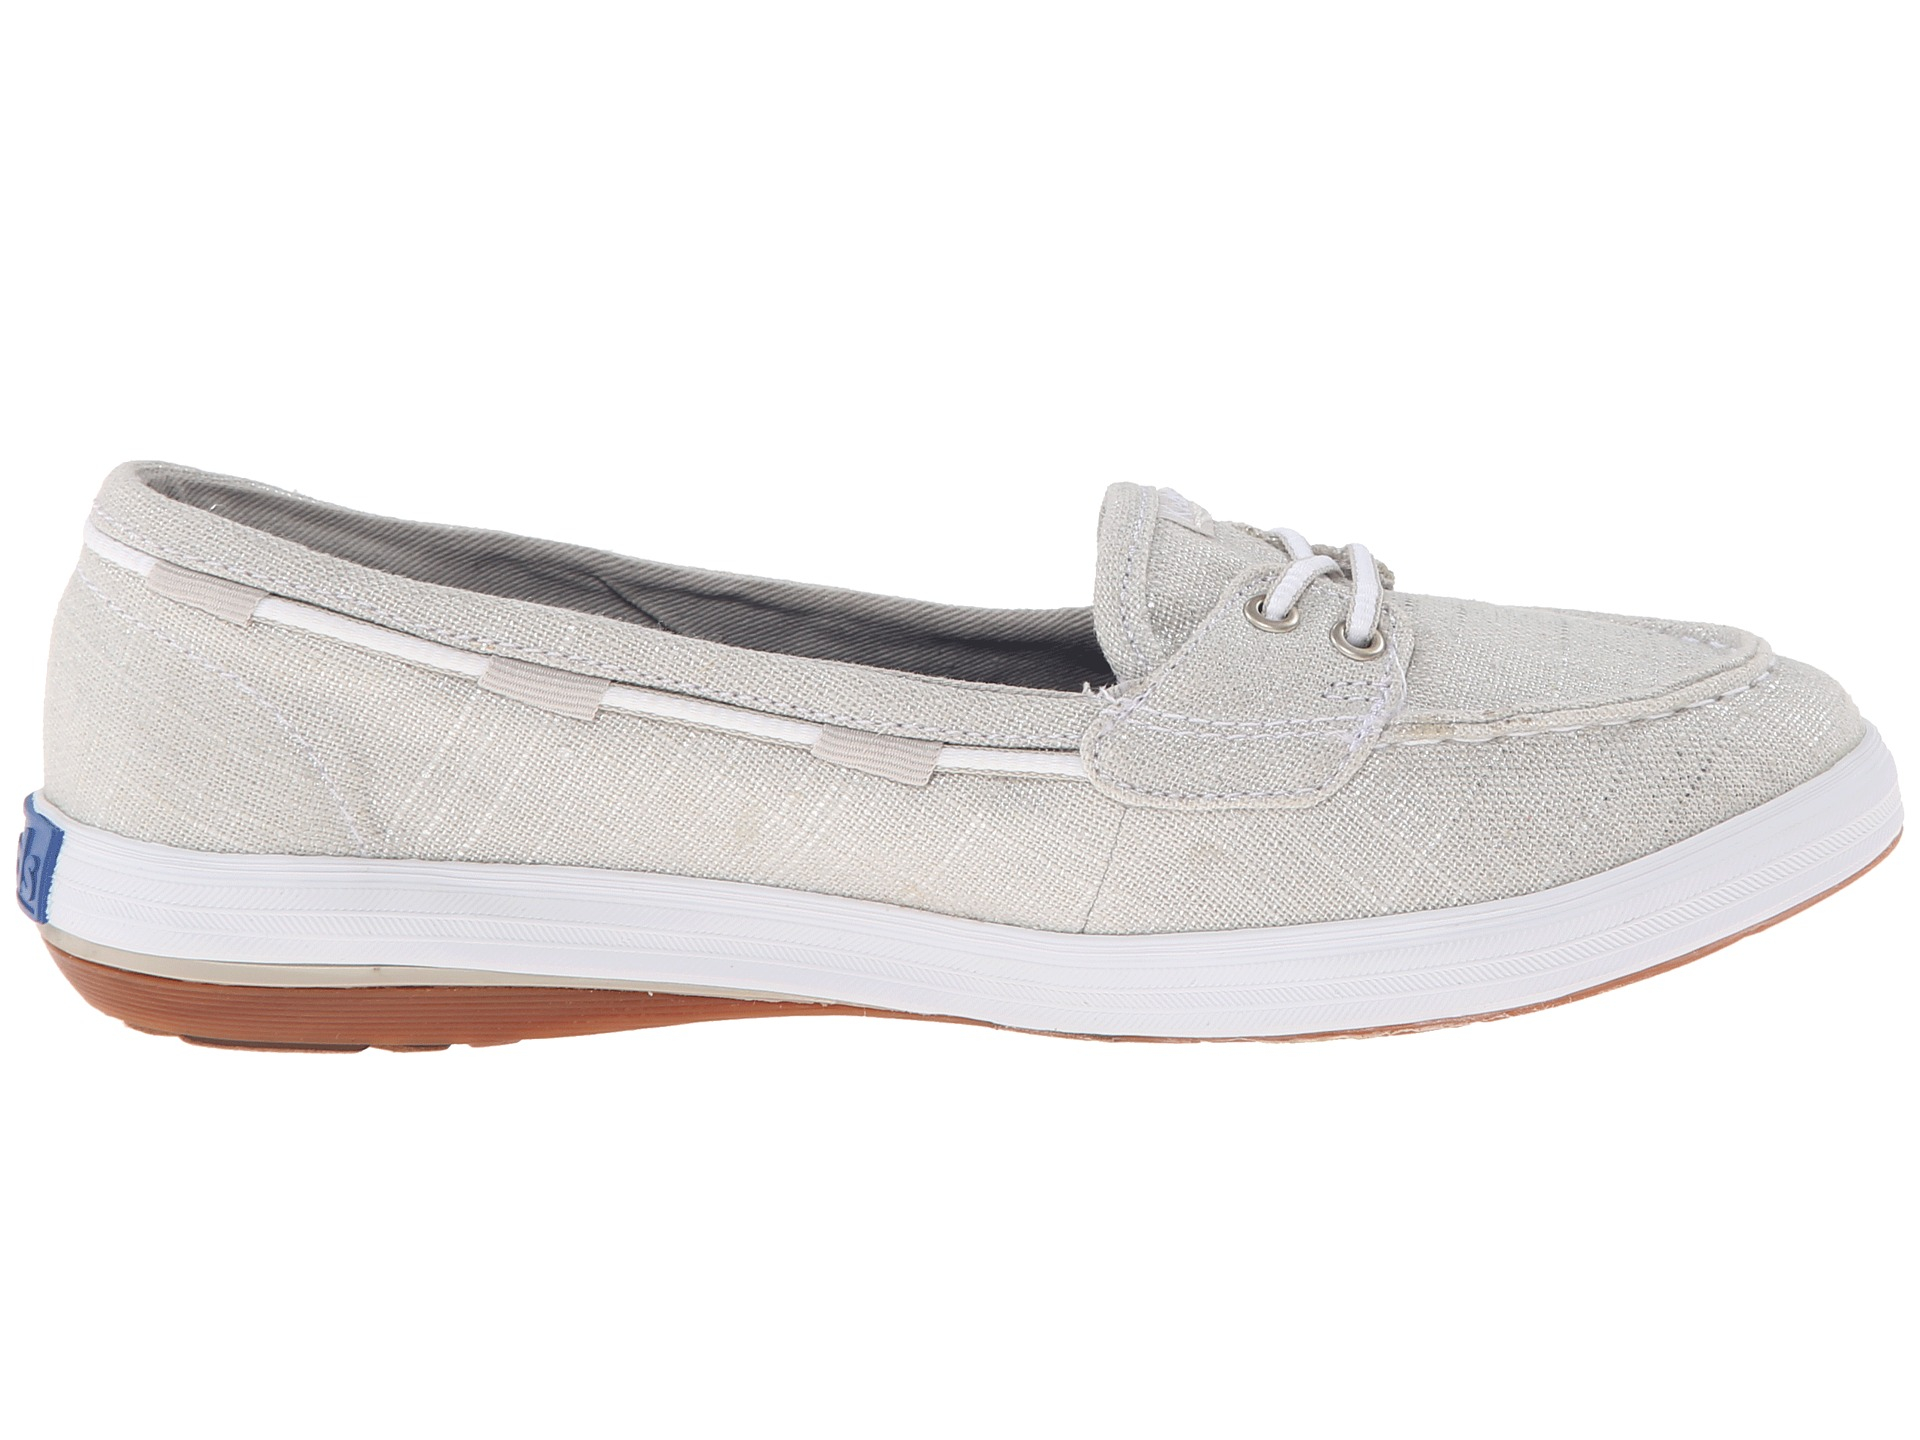 6637fa9975 Keds Glimmer Boat Brushed Twill in Metallic - Lyst